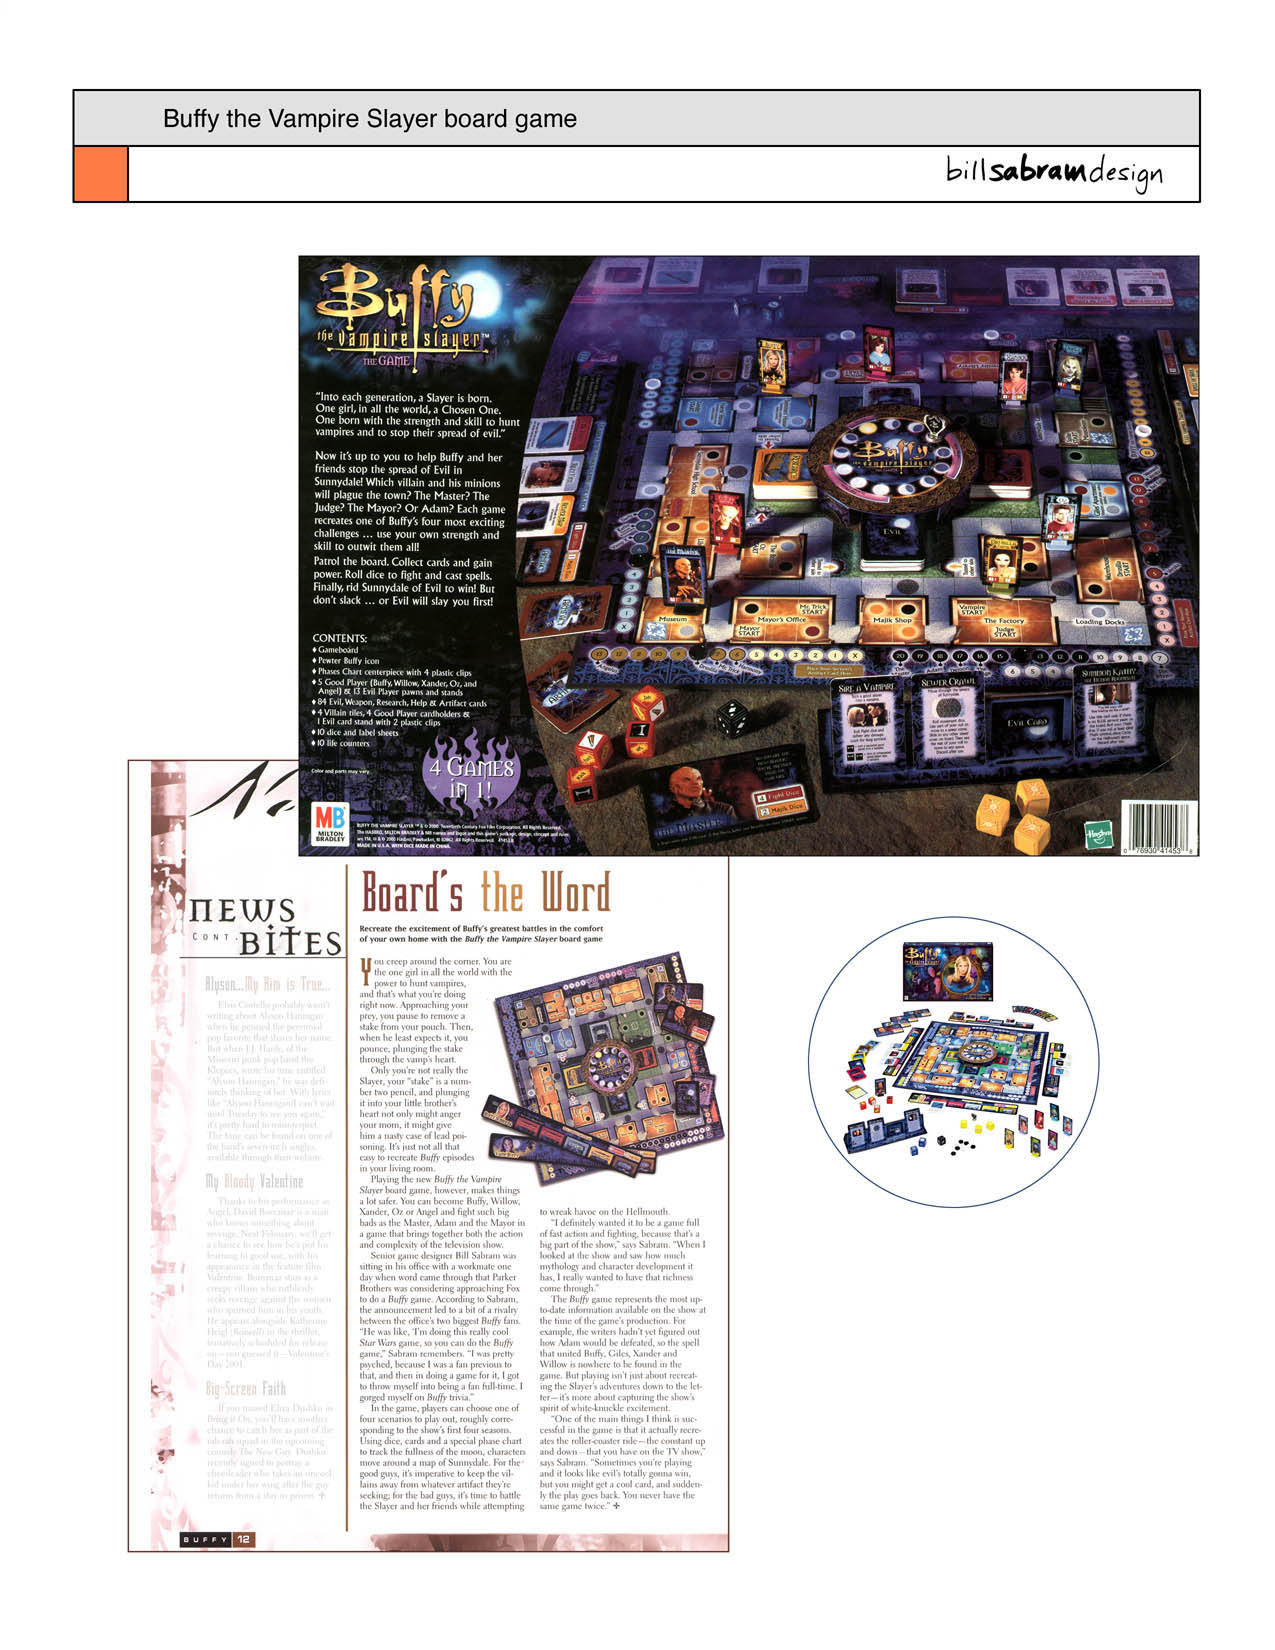 Ranked in the GAMES MAGAZINE Top 100 Games of the Year - December 2001 issue and featured in the BUFFY #10 WINTER 2000 Official Fan Magazine...  Fast action fighting board game, just like the hit television show. In this game, you and your friends team up to save Sunnydale from evil. Will you play Buffy the Vampire Slayer, Willow the wicca, Oz the werewolf or Xander? Travel the board to collect cards. Race to uncover artifacts before they fall into the hands of evil. Roll dice to fight and cast spells. Stake vampires. The game includes four different scenarios, (one for each of the first four seasons of the show) and recreates the white-knuckled clash of each season finale.  This was the final game I designed as a full Hasbro Games employee before they moved 100 miles away. It was an incredibly rewarding swan song, since it was well received by gamers and Buffy fans alike. I especially enjoyed infusing the game rules and components with snappy dialogue and witty humor from the hit TV show.